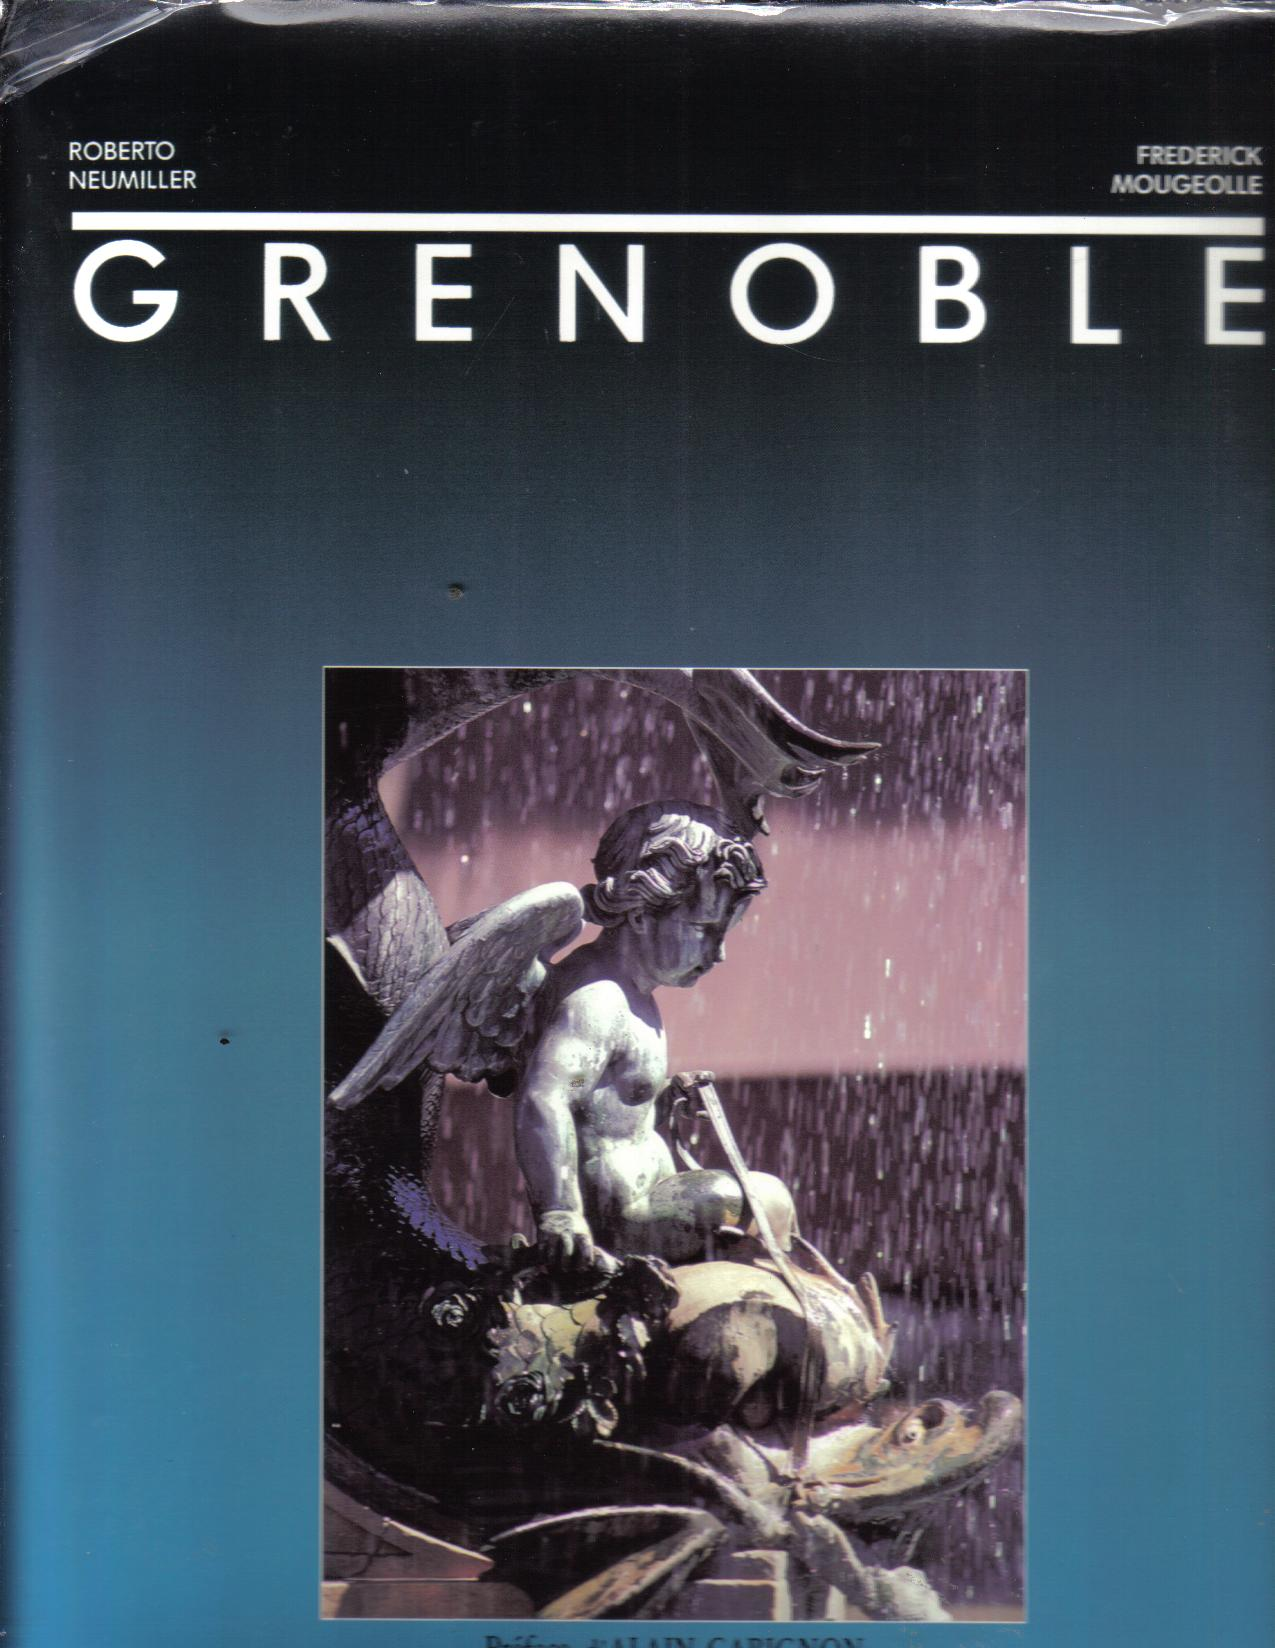 GrenobleFrederic Mougeolle/Roberto Neumiller